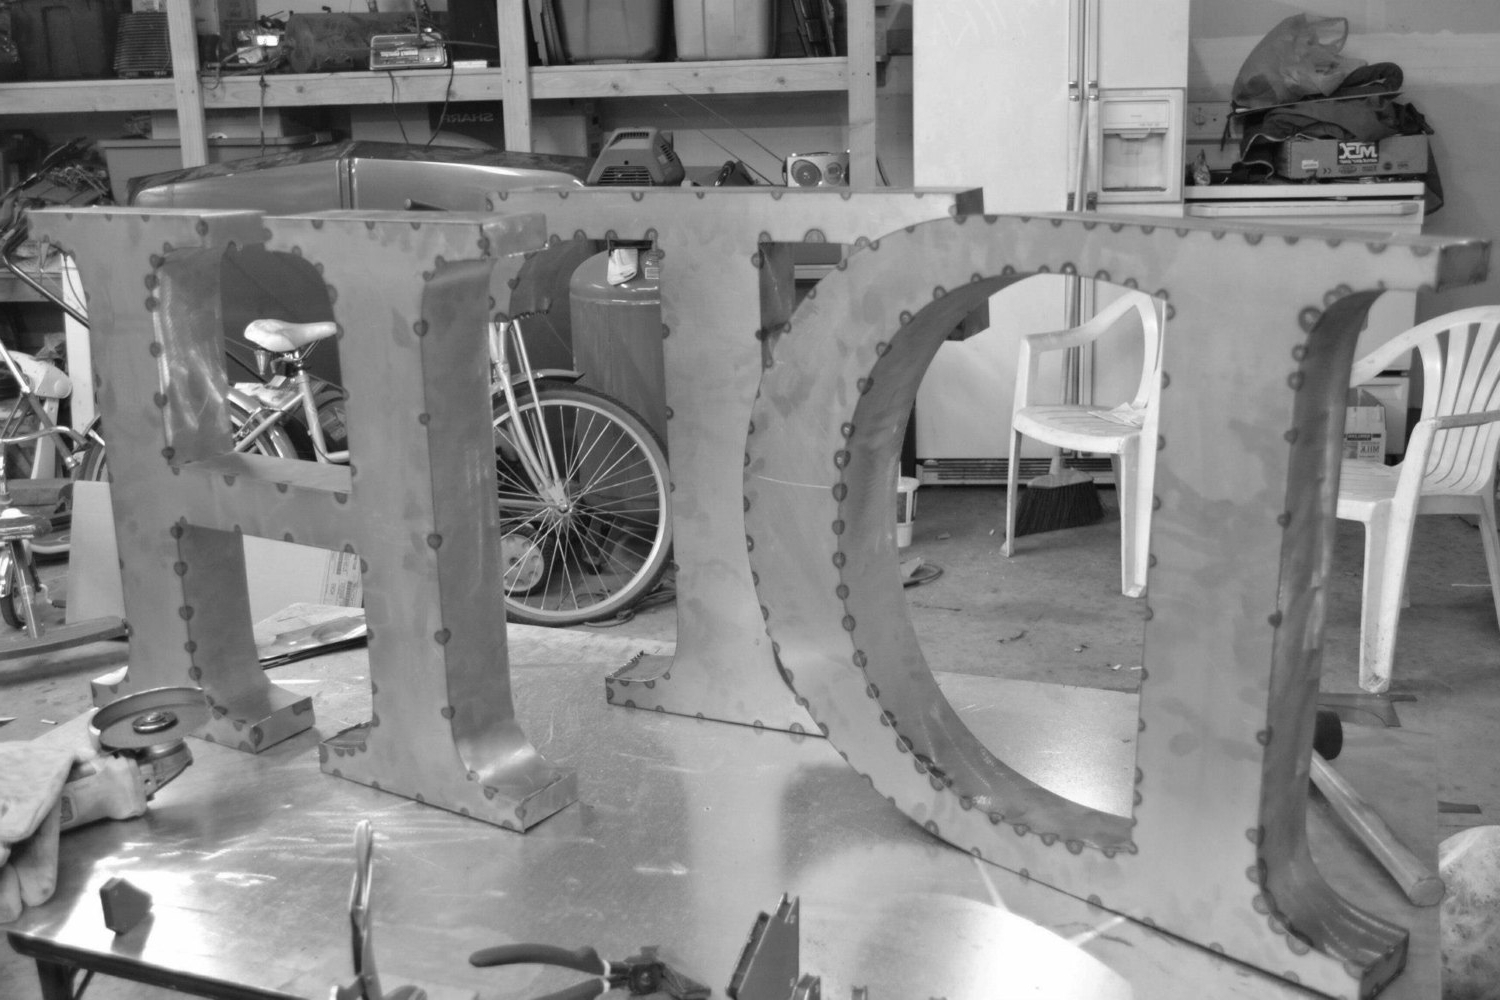 Well Known Large Letter Large Letters For Wall Decor With Diy Wall Decor Within Metal Letter Wall Art (View 15 of 15)